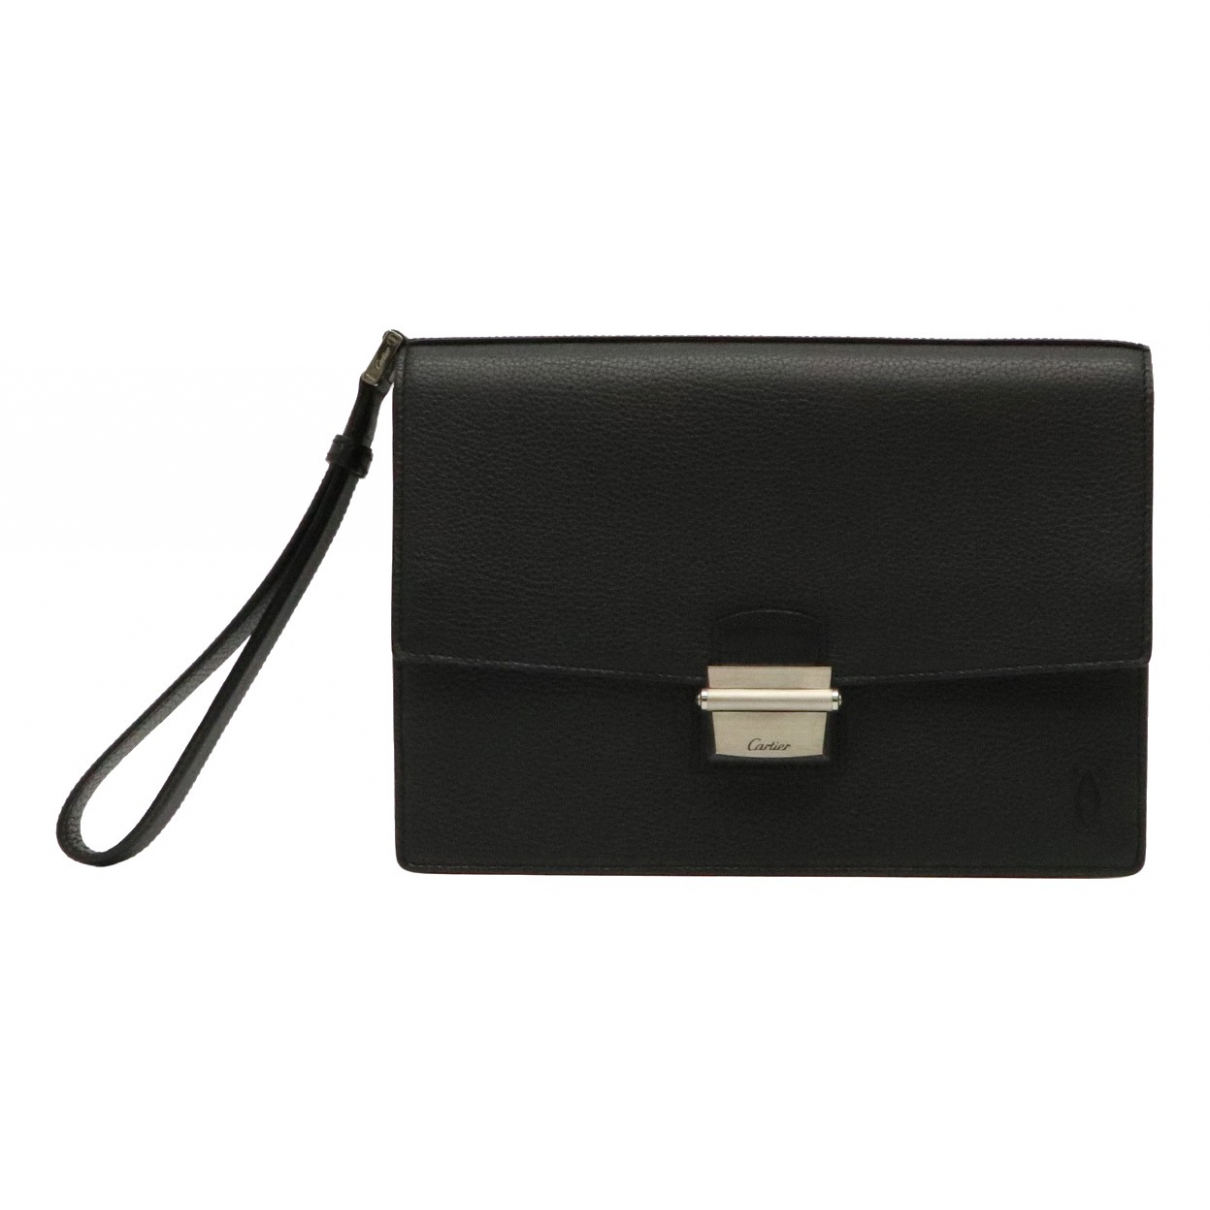 Cartier \N Black Leather Clutch bag for Women \N